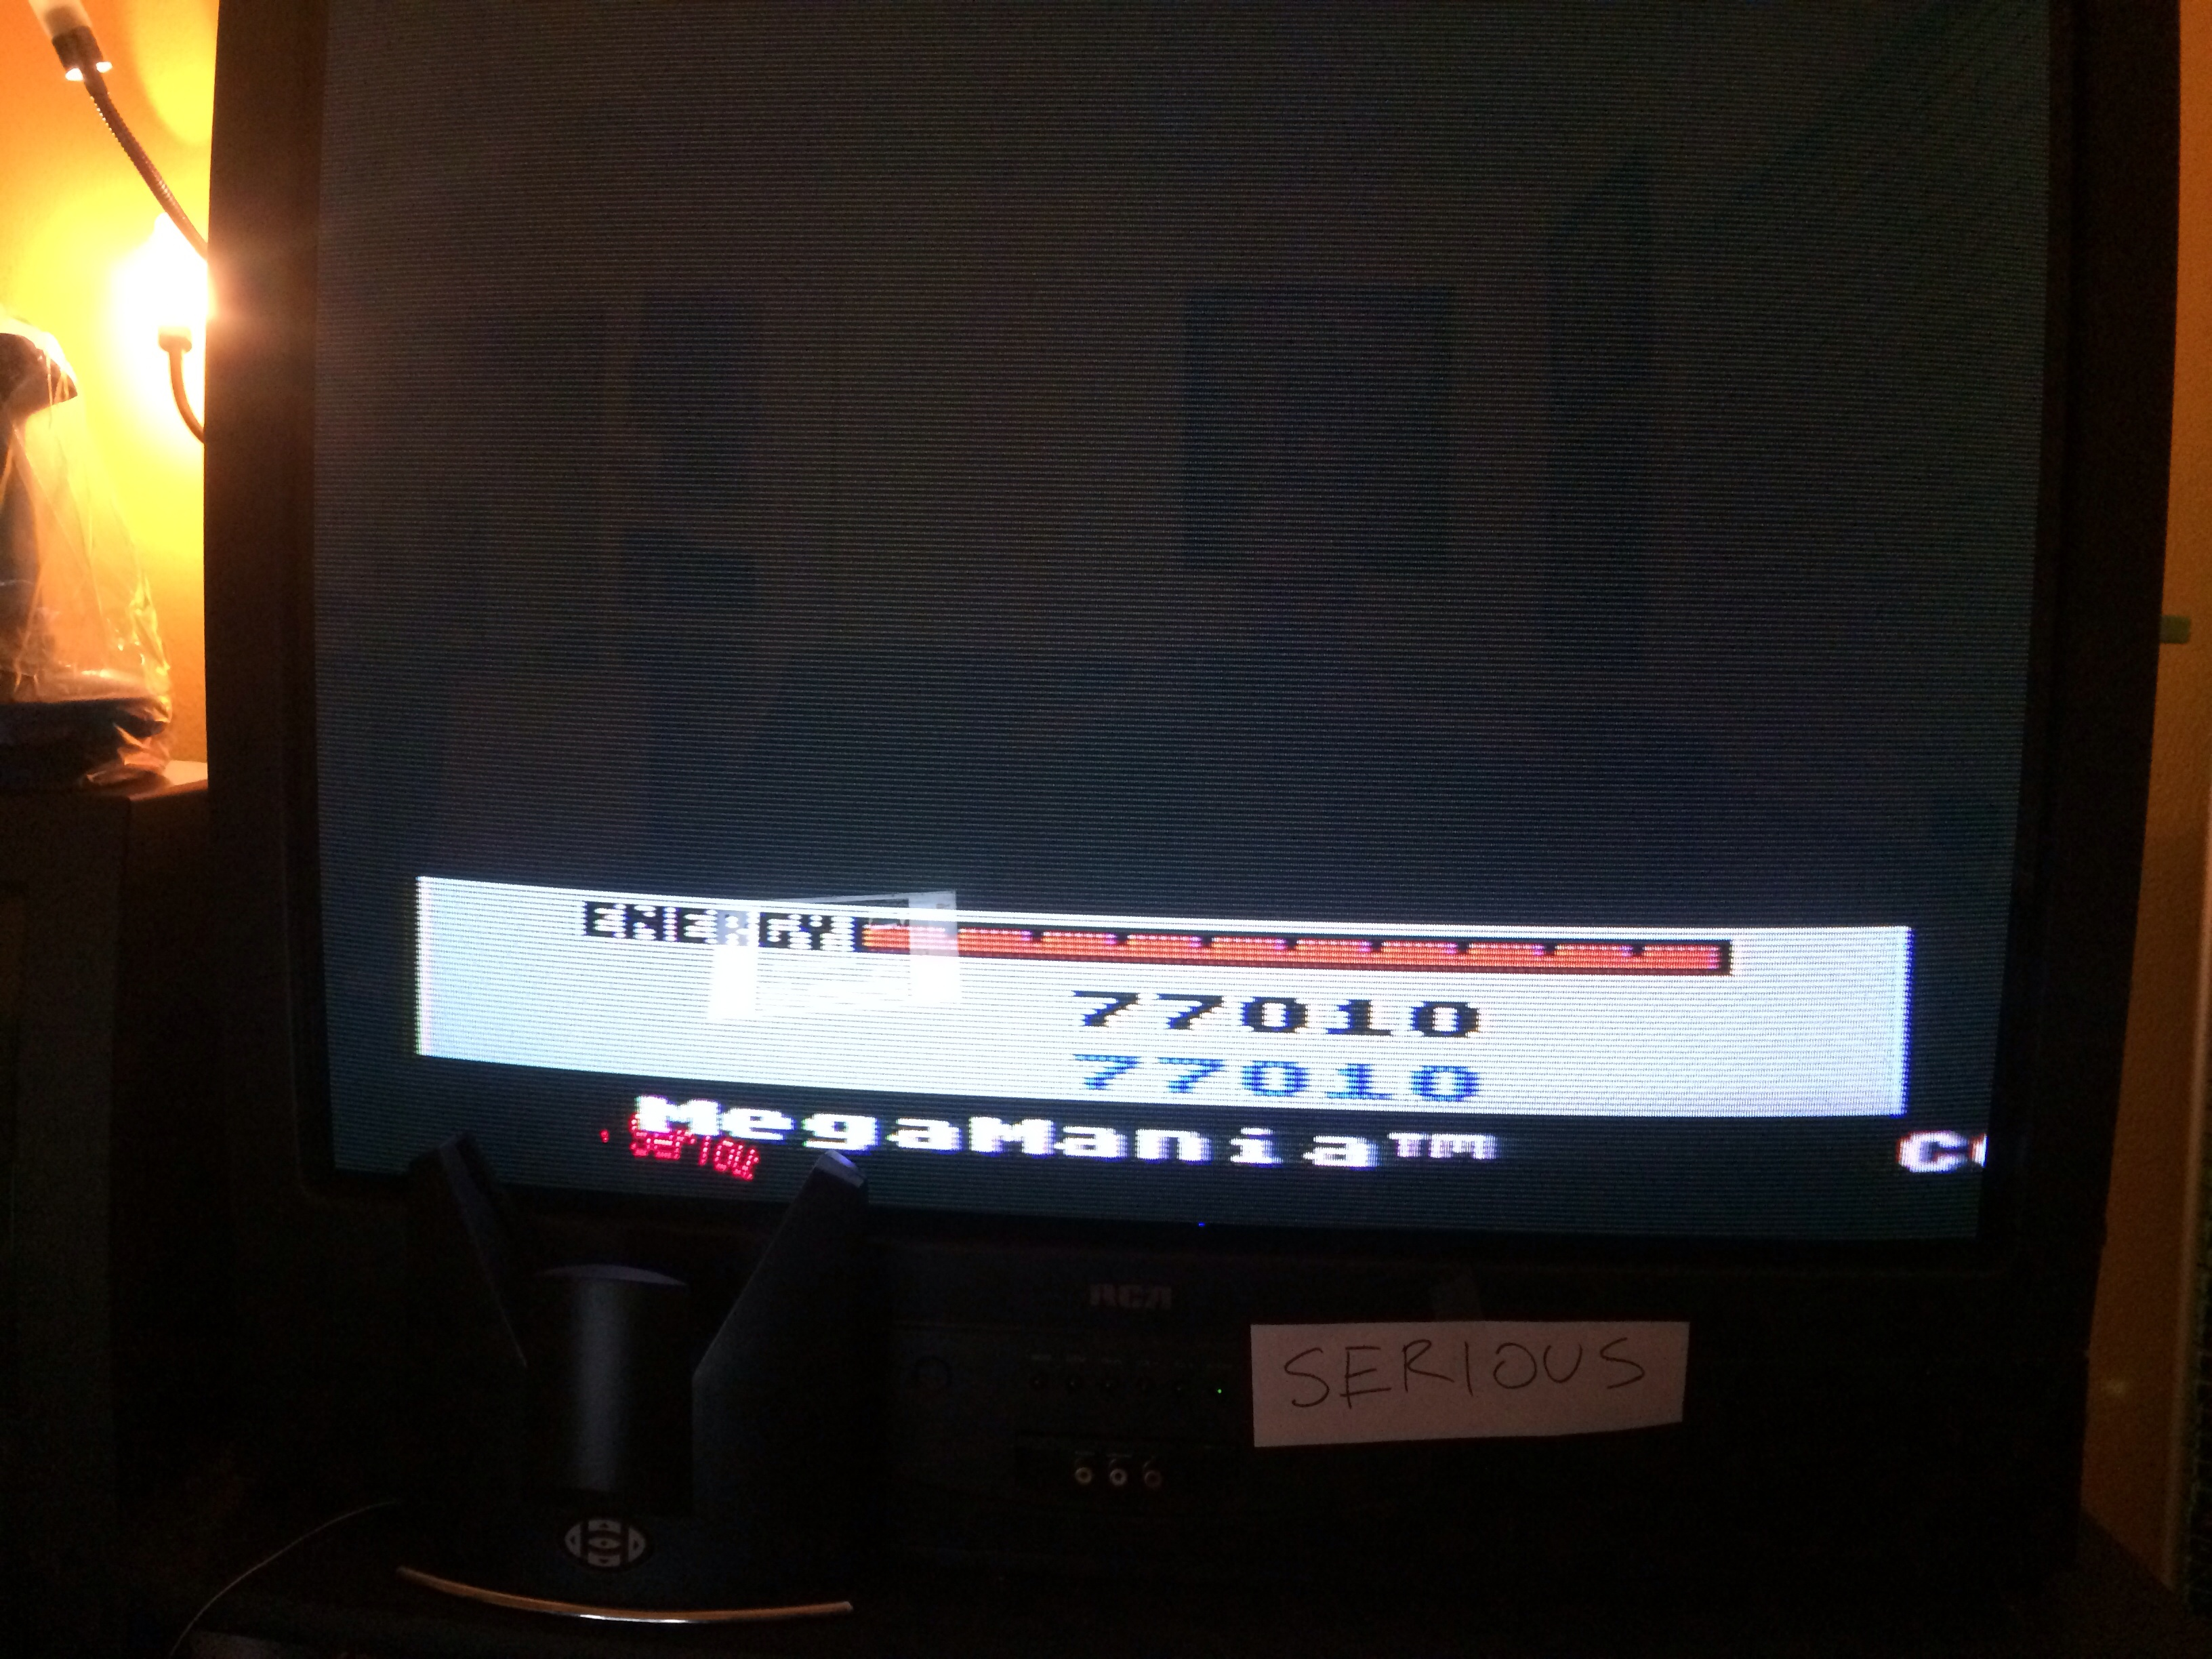 Serious: Megamania [Guided Missiles] (Atari 5200) 77,010 points on 2015-01-10 17:32:44